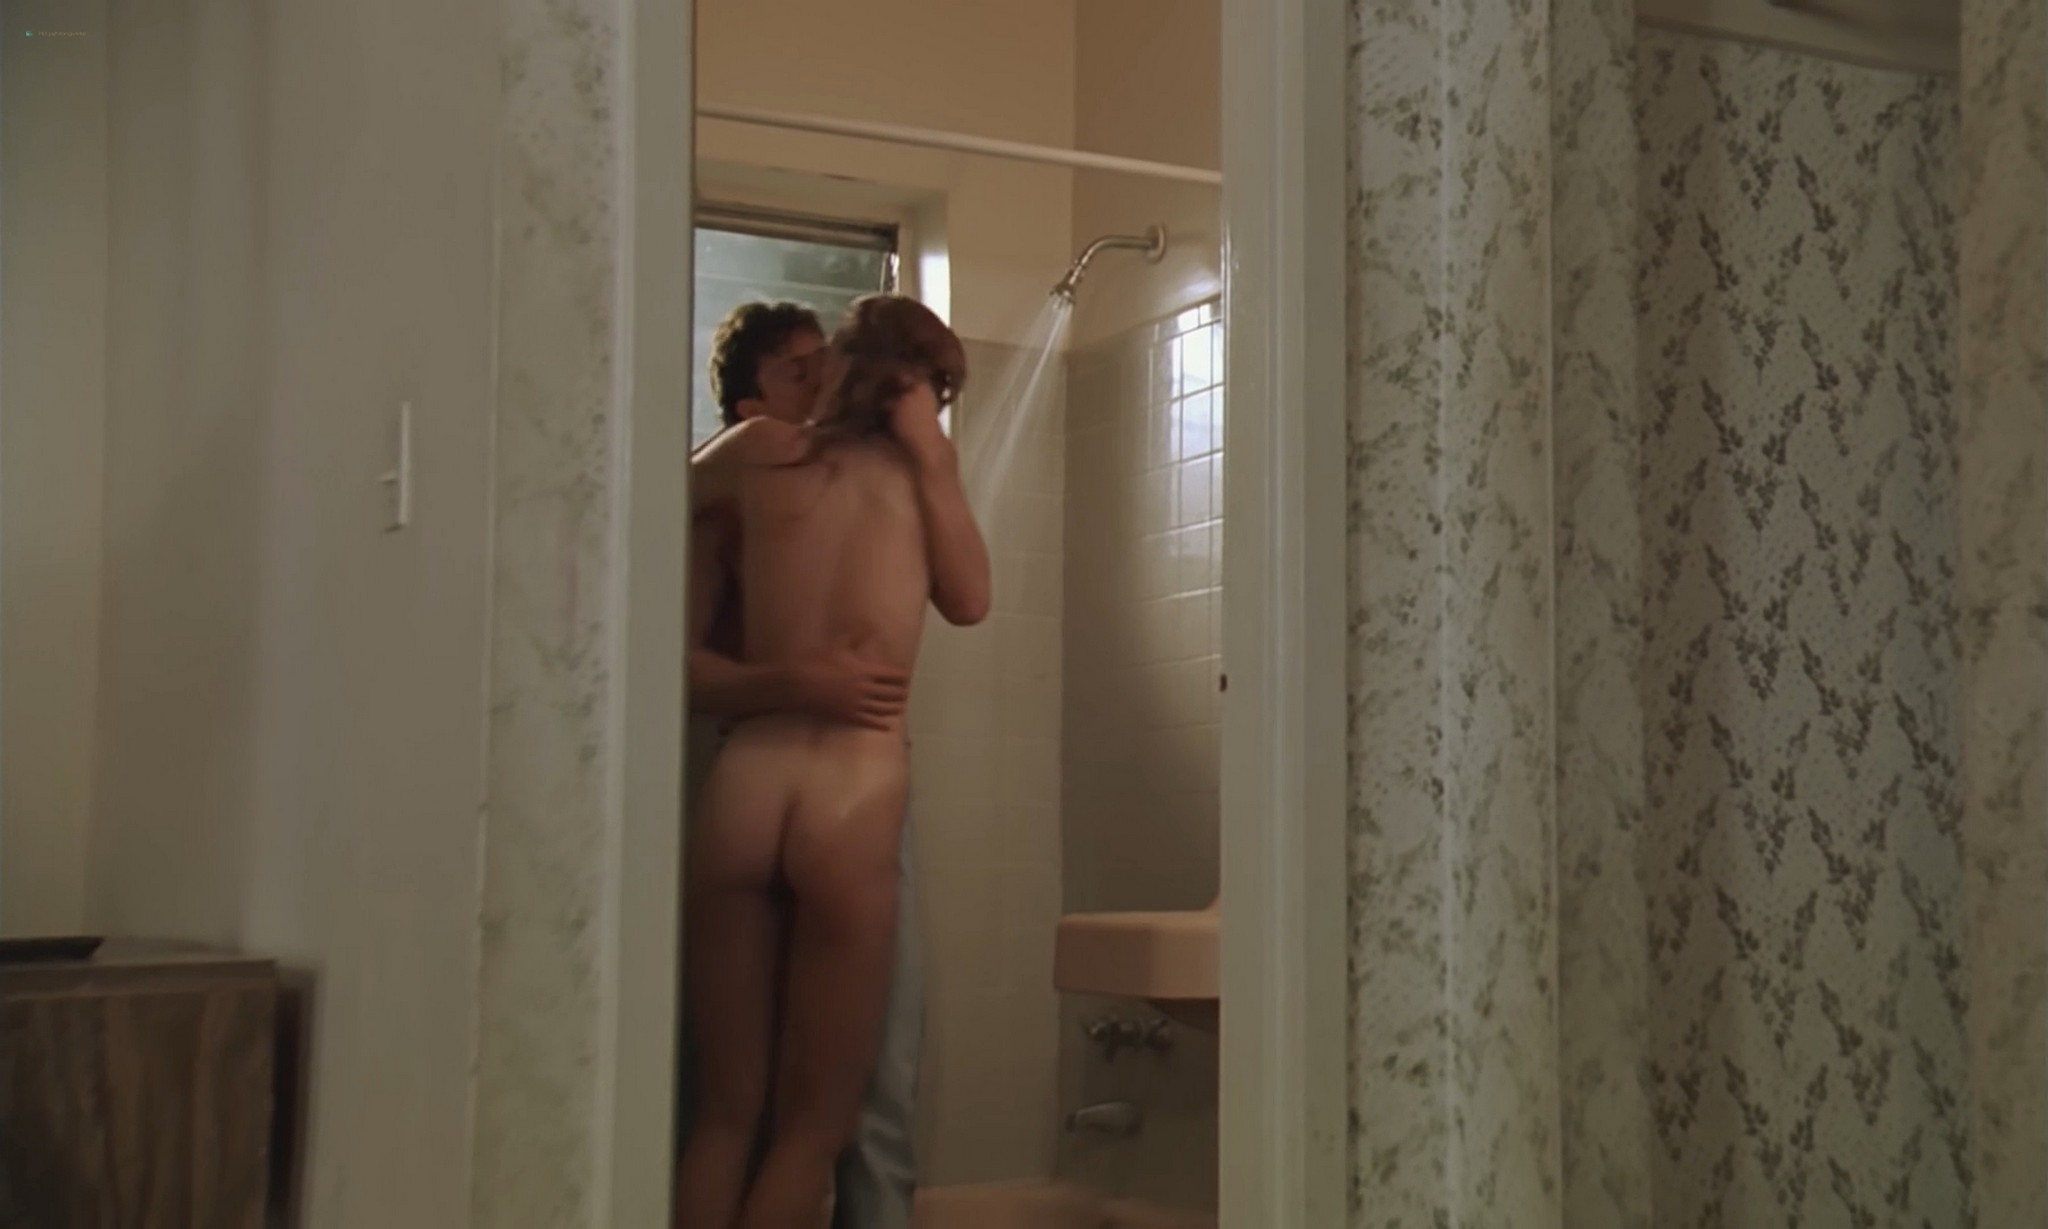 Victoria Prouty nude and sex in the shower American Rickshaw 1989 1080p BluRay 13